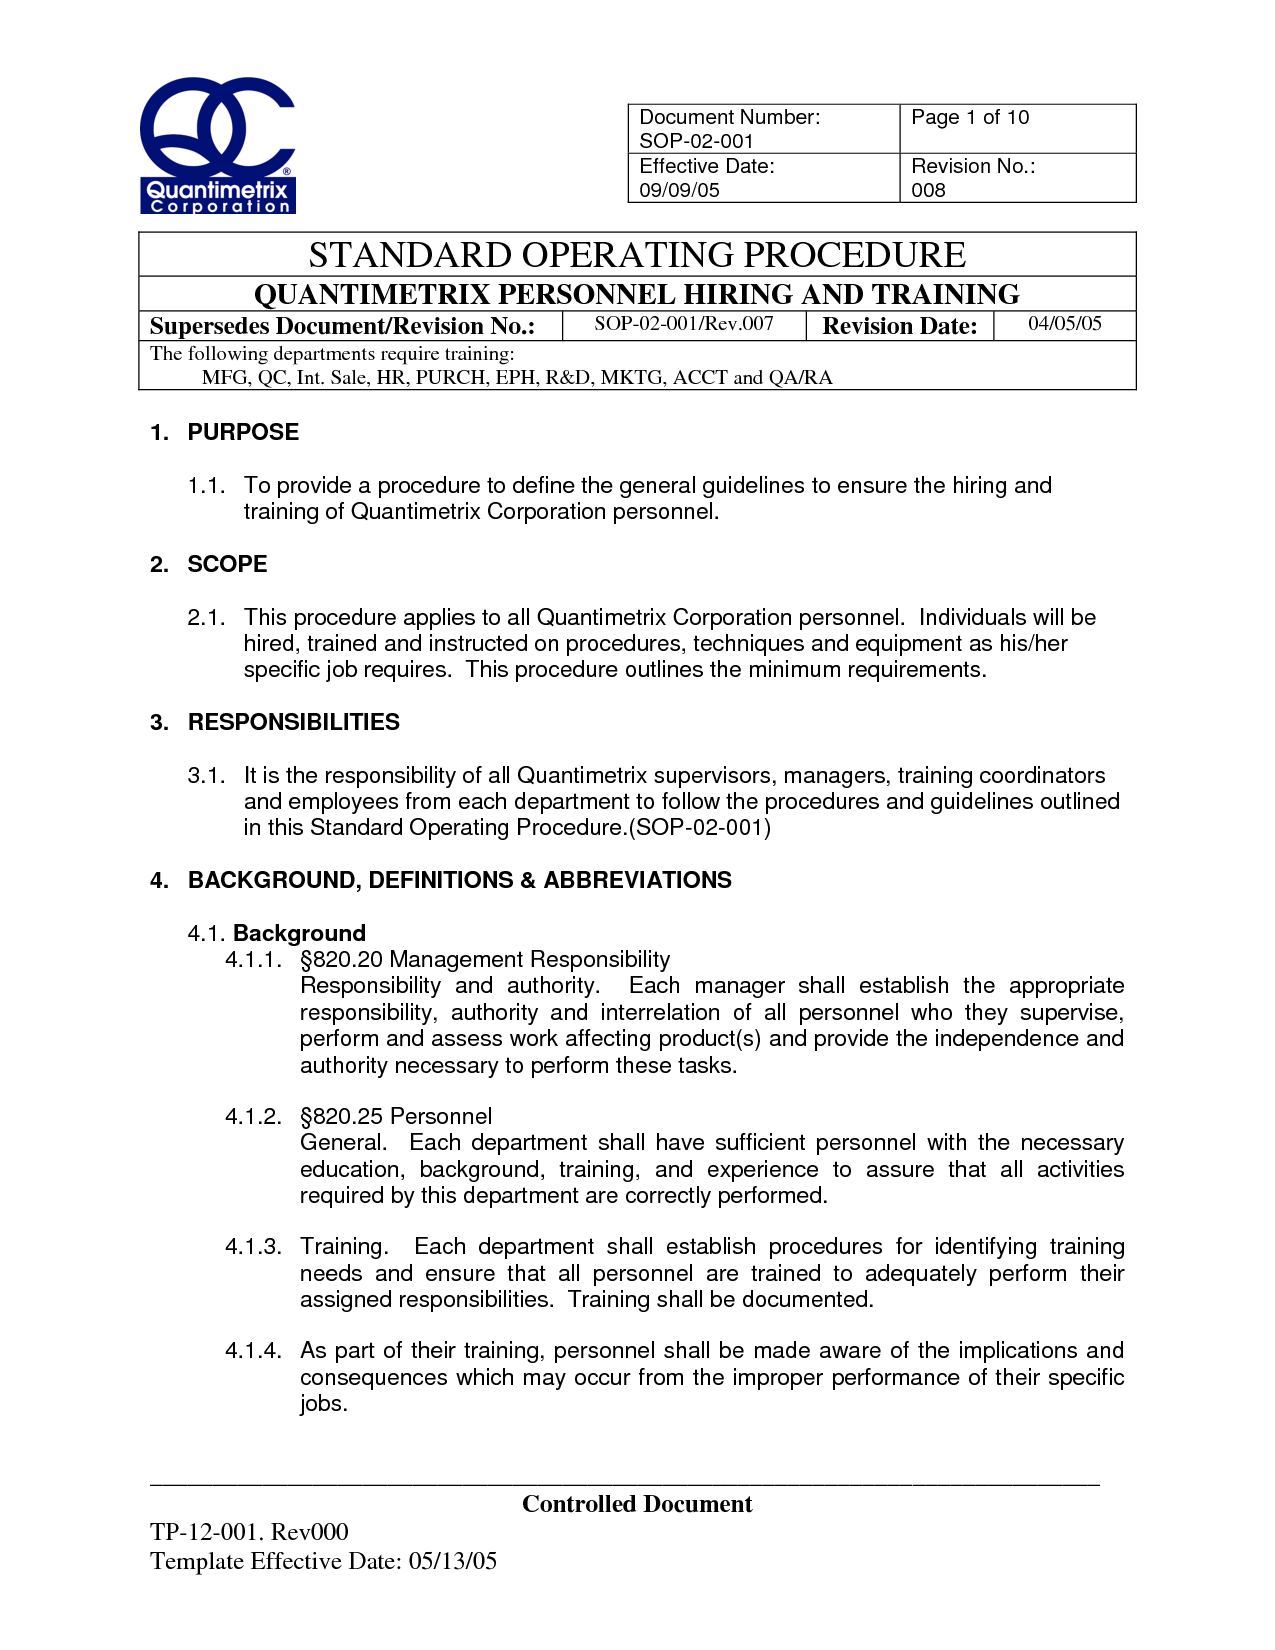 ISO Standard Operating Procedures Template | SOP 02 001 Rev.008 Personnel  Hiring  Procedure Templates